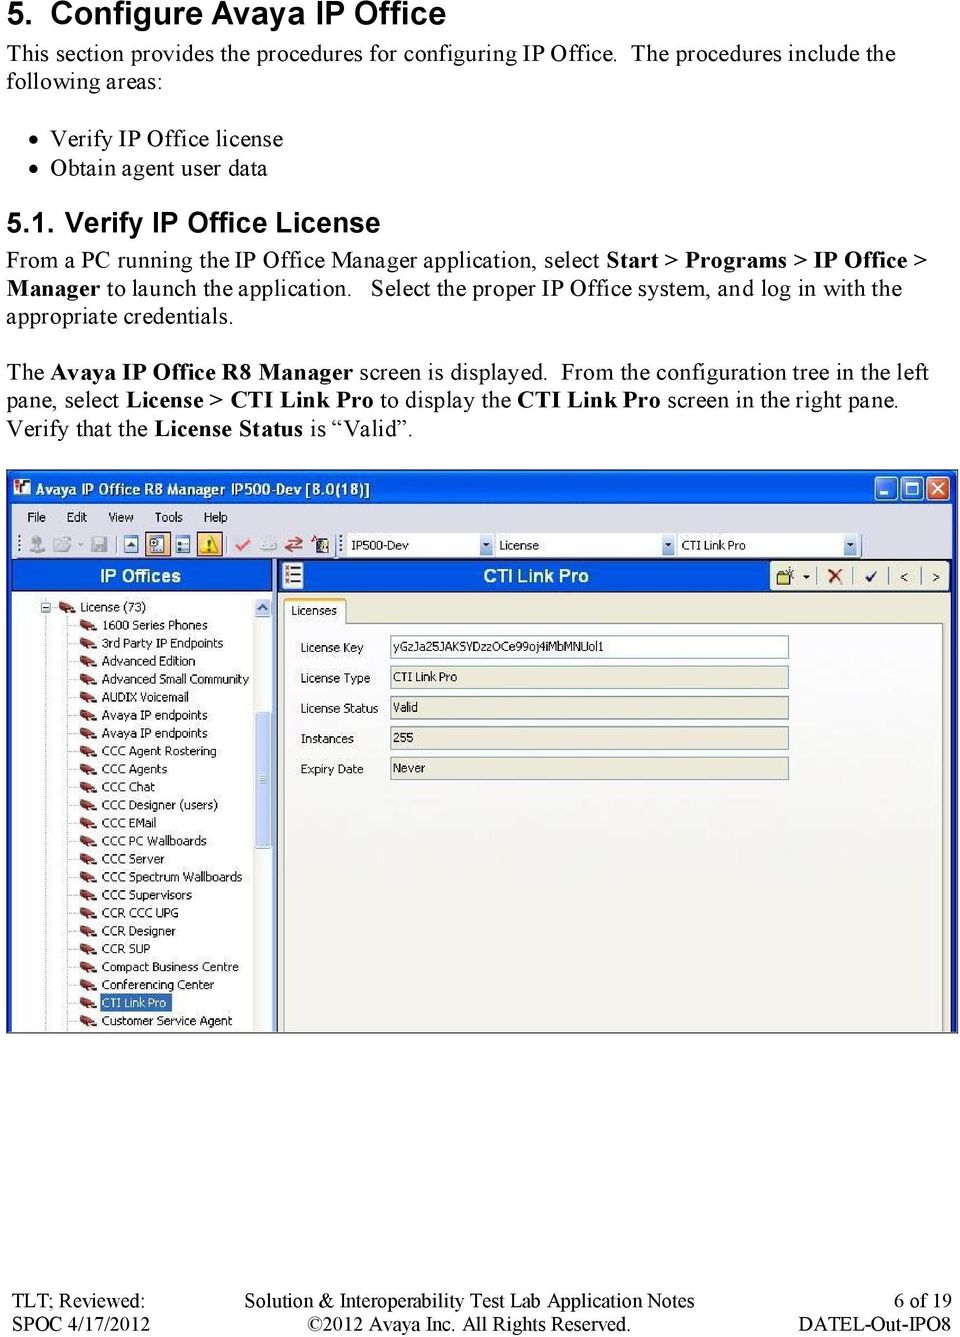 Verify IP Office License From a PC running the IP Office Manager application, select Start > Programs > IP Office > Manager to launch the application.